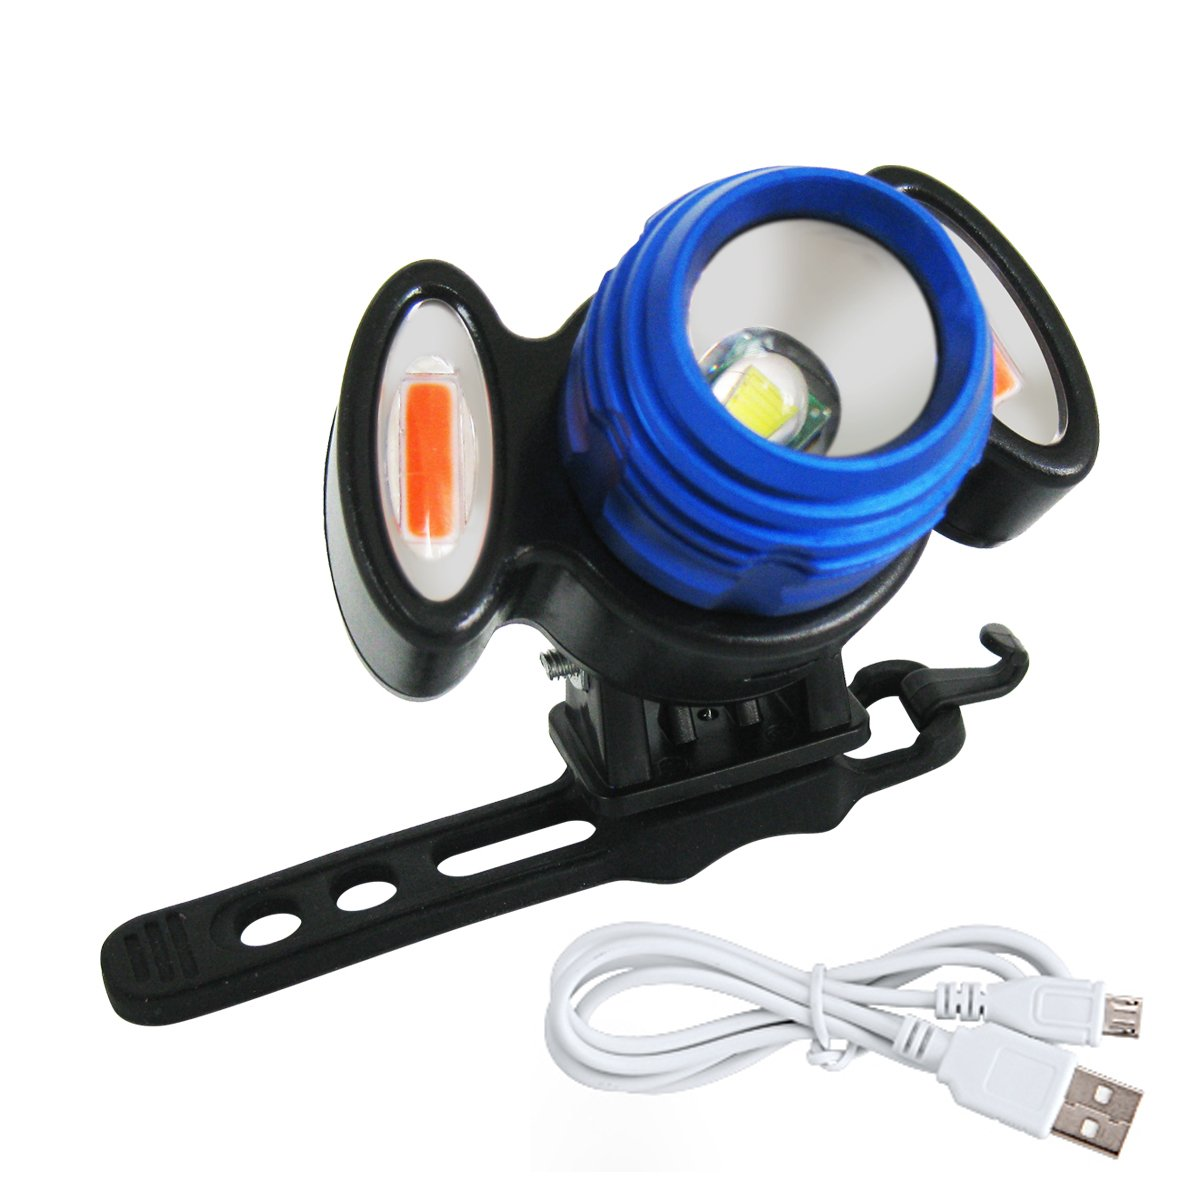 1582a79c2bd6 E-Goal 4 Modes LED Head lamp Bike Light Rechargeable Headlight 18650 Head  with USB outlet